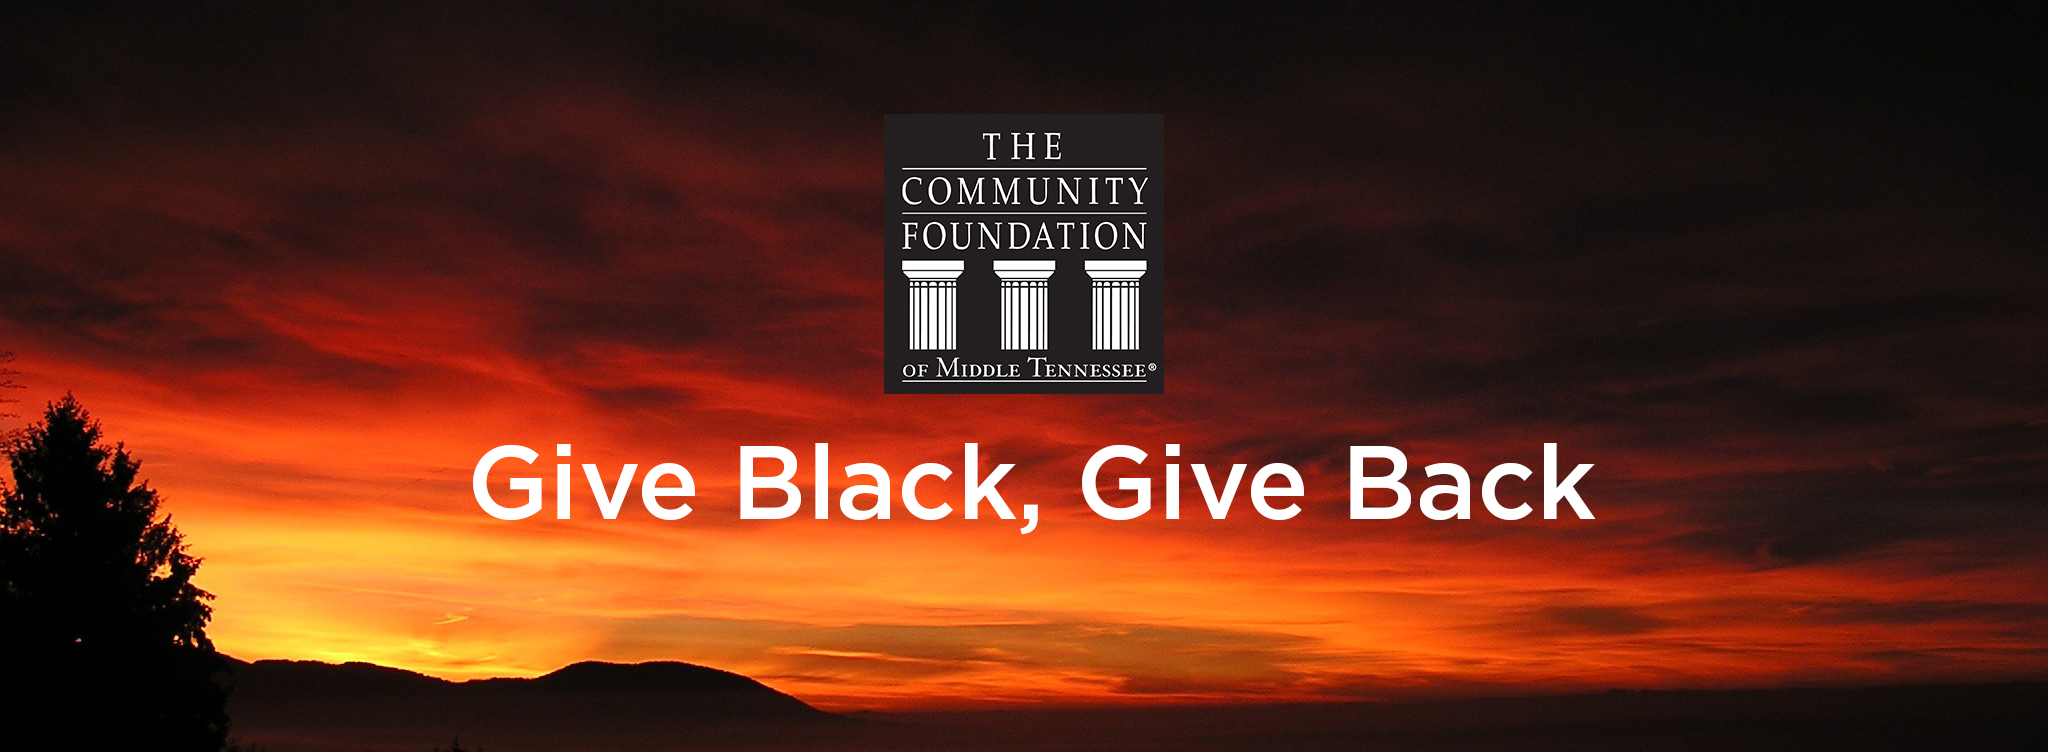 Give Black Give Back